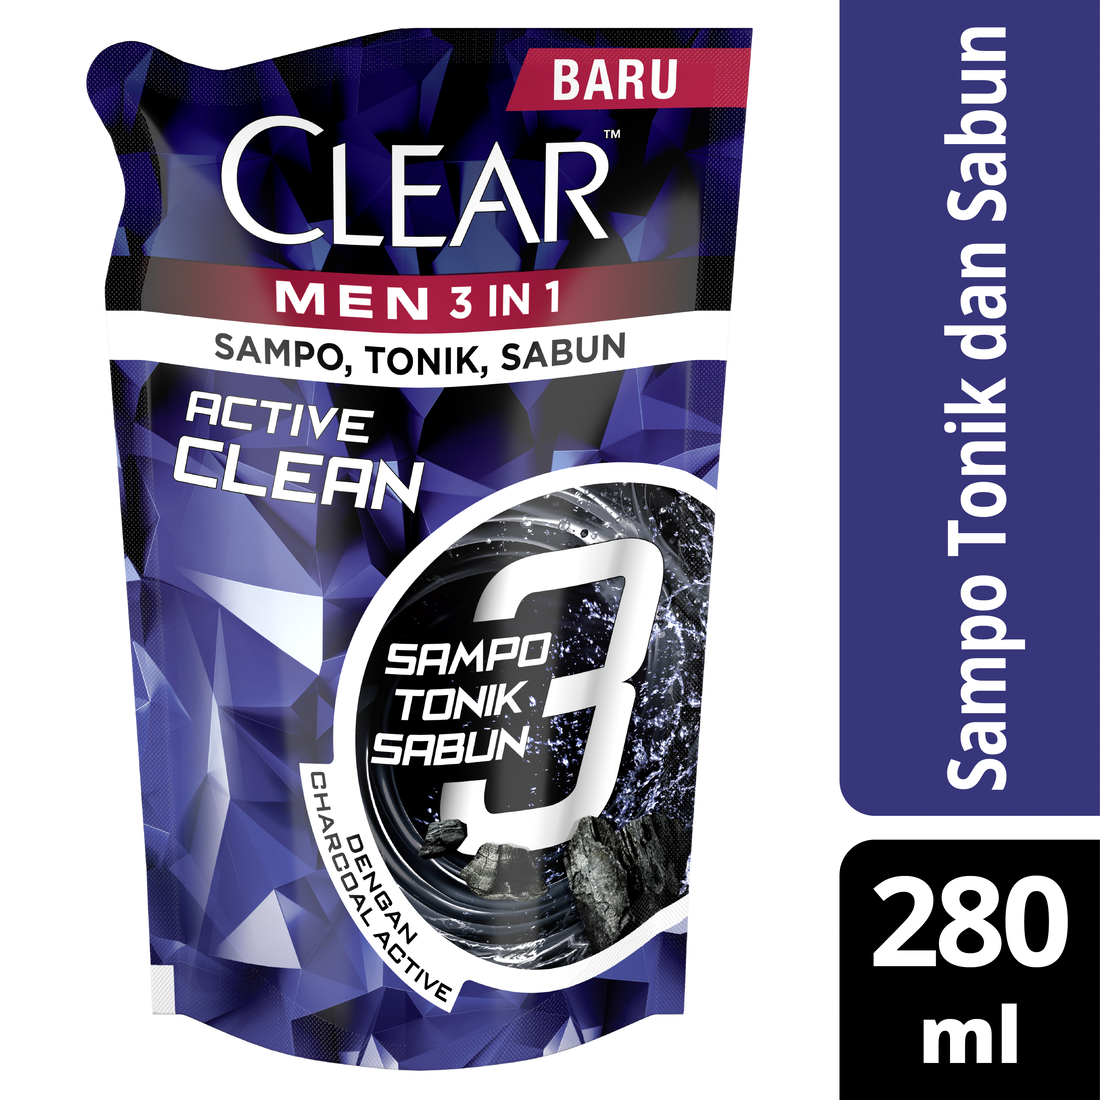 Clear Men 3-In-1 Shampo Active Clean Bottle 280ml